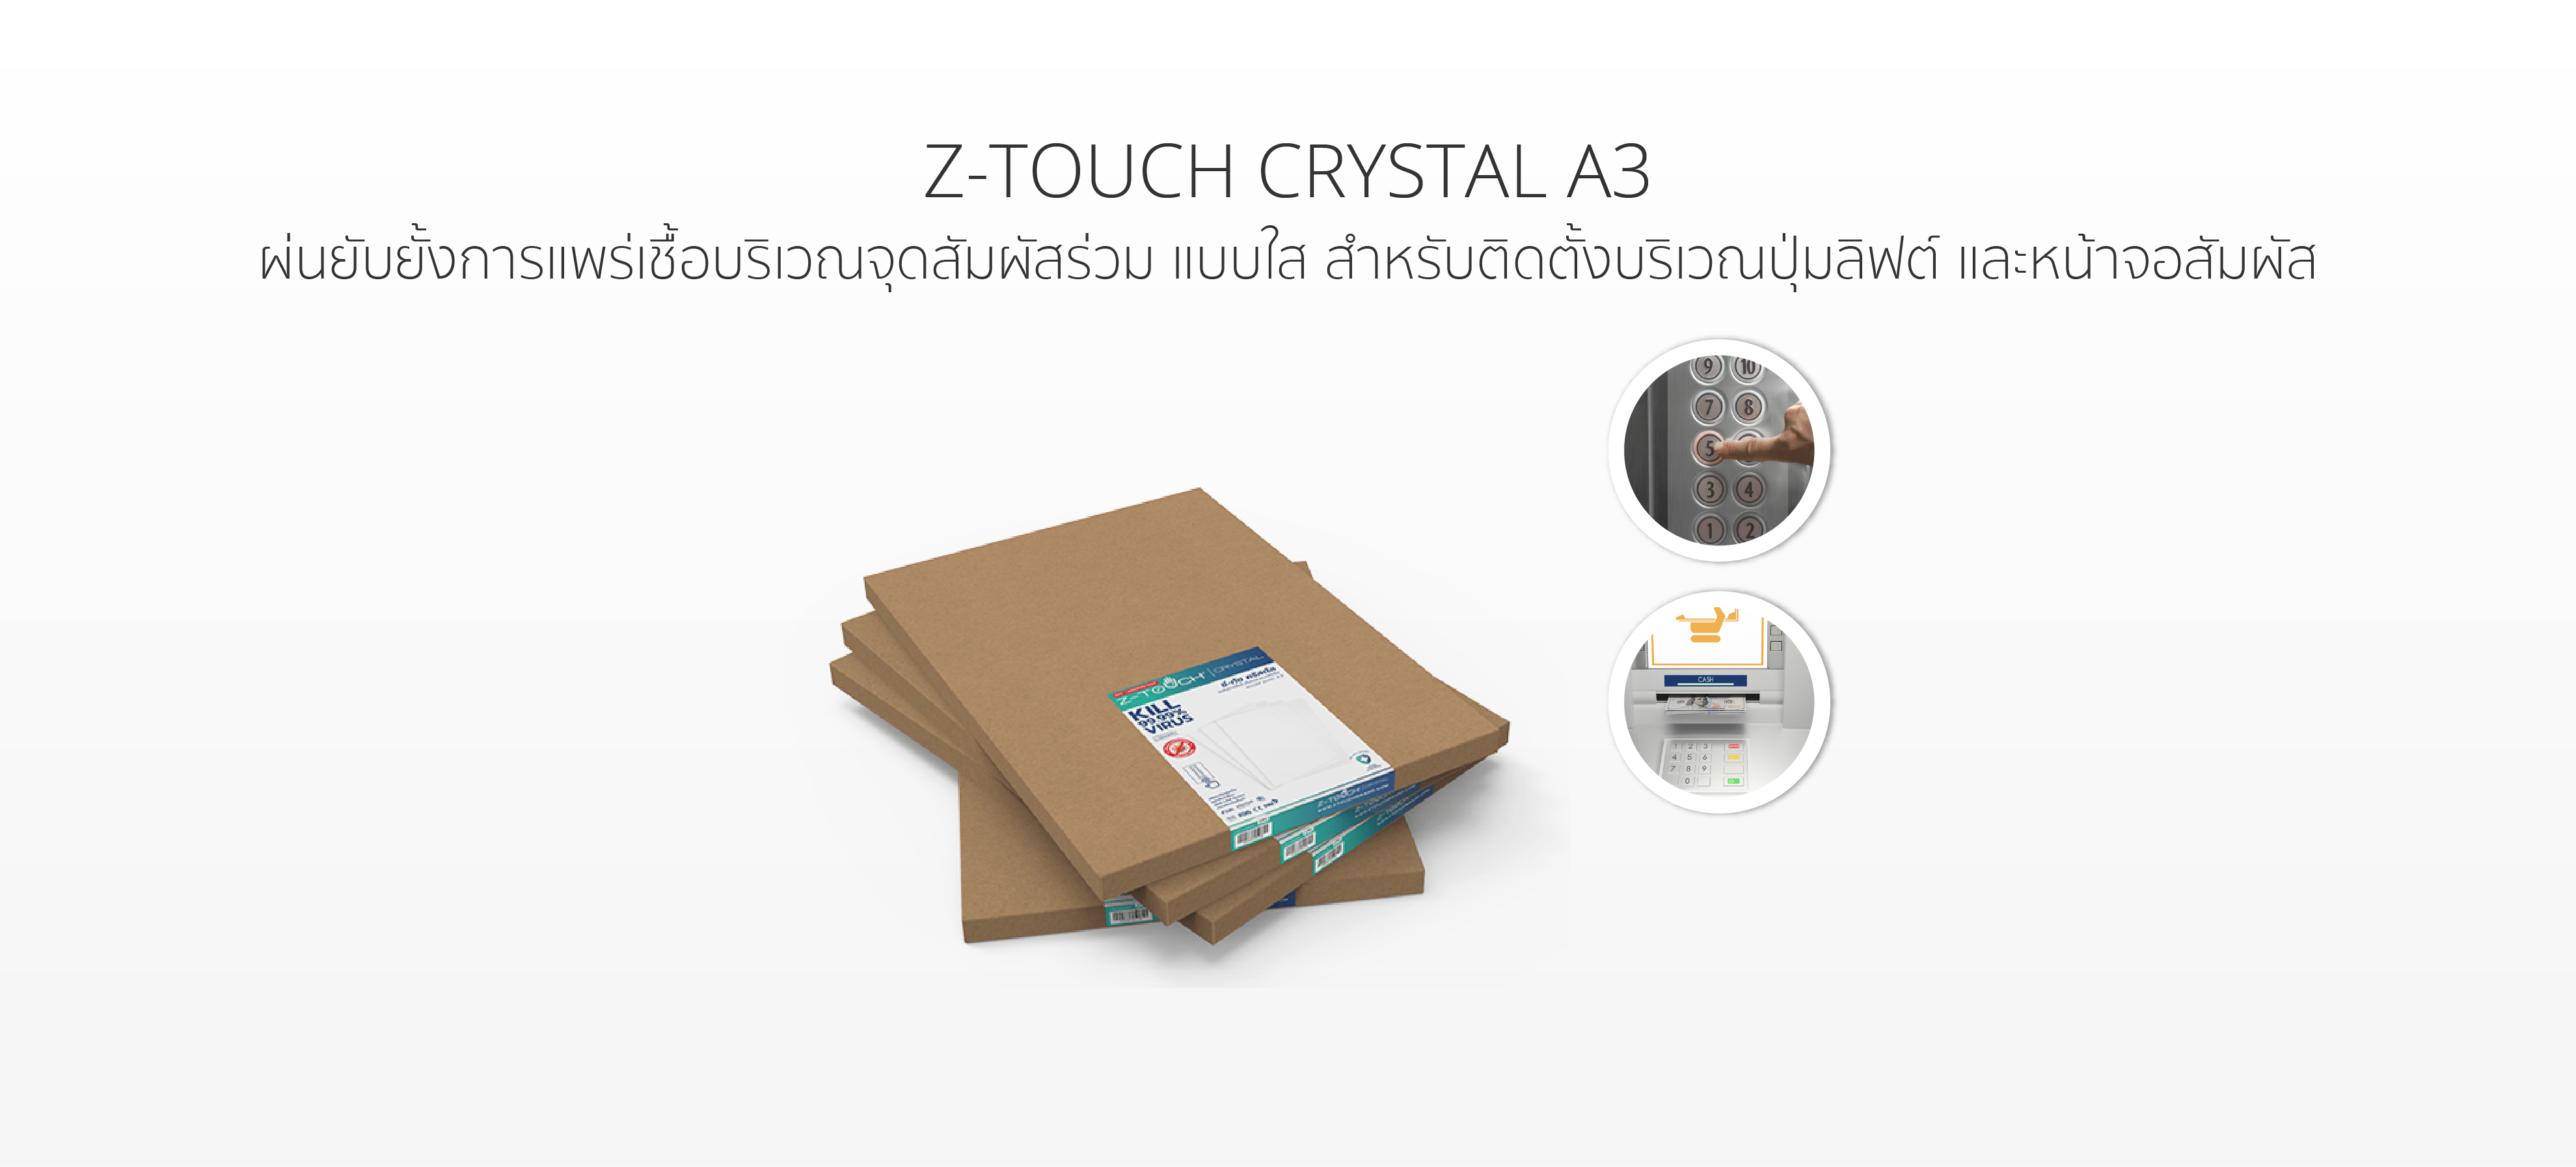 Z-Touch Crystal A3